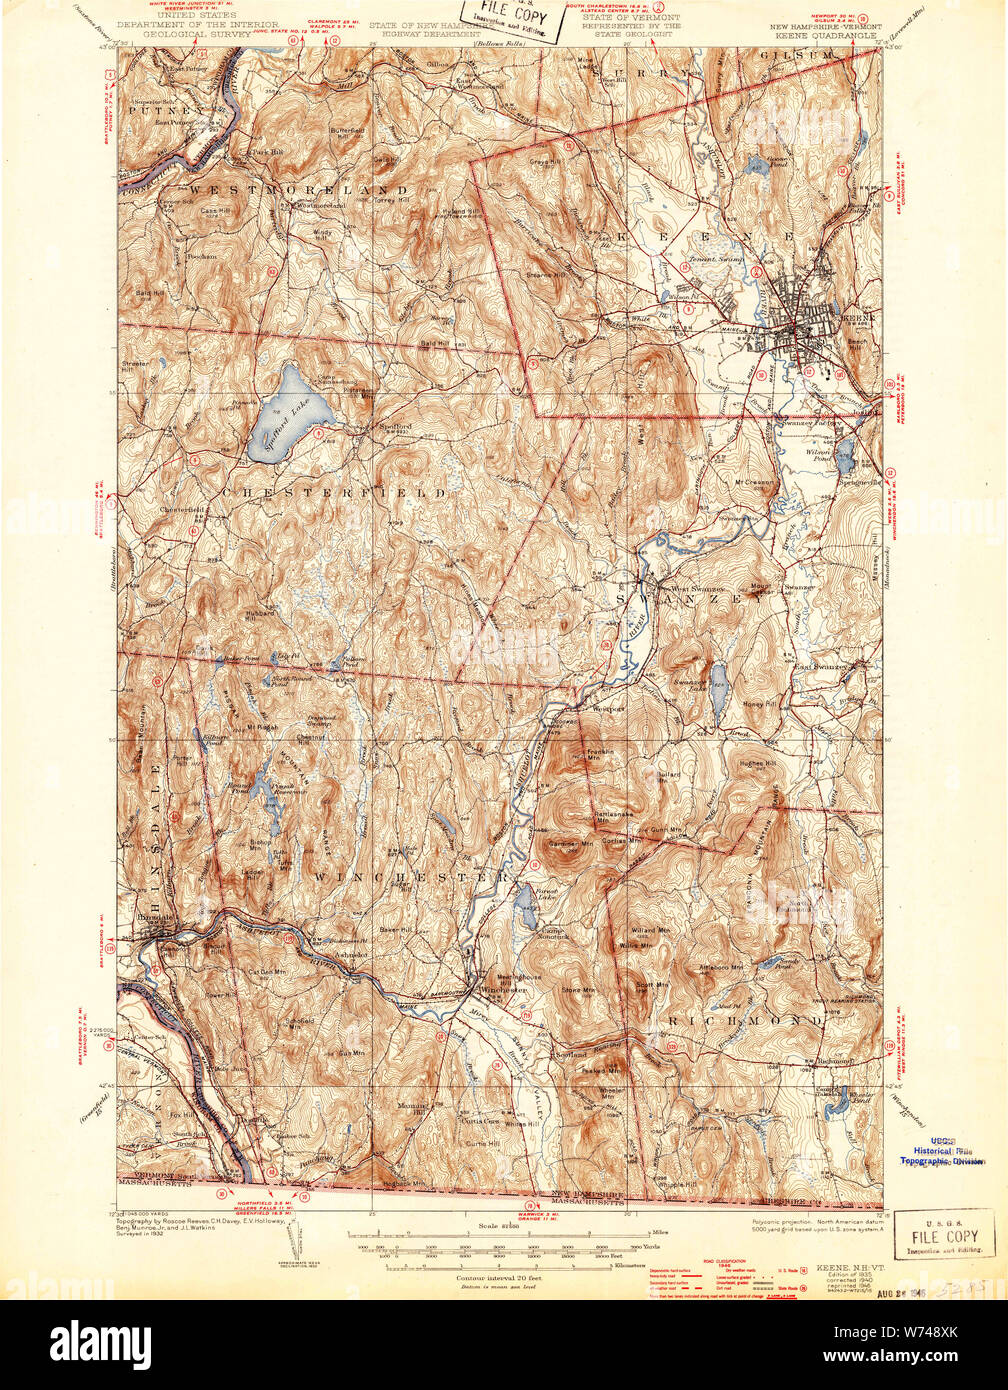 USGS TOPO Map New Hampshire NH Keene 330119 1935 62500 Restoration Keene Nh Map State on lancaster nh map, newburyport nh map, peterborough nh map, peabody nh map, hooksett nh map, methuen nh map, jacksonville nh map, connecticut new england map, keene new hampshire, nh state road map, westminster nh map, manchester nh on map, brattleboro nh map, plymouth nh map, franklin nh map, mansfield nh map, walpole nh map, buffalo nh map, cheshire nh map, monadnock mountain nh map,